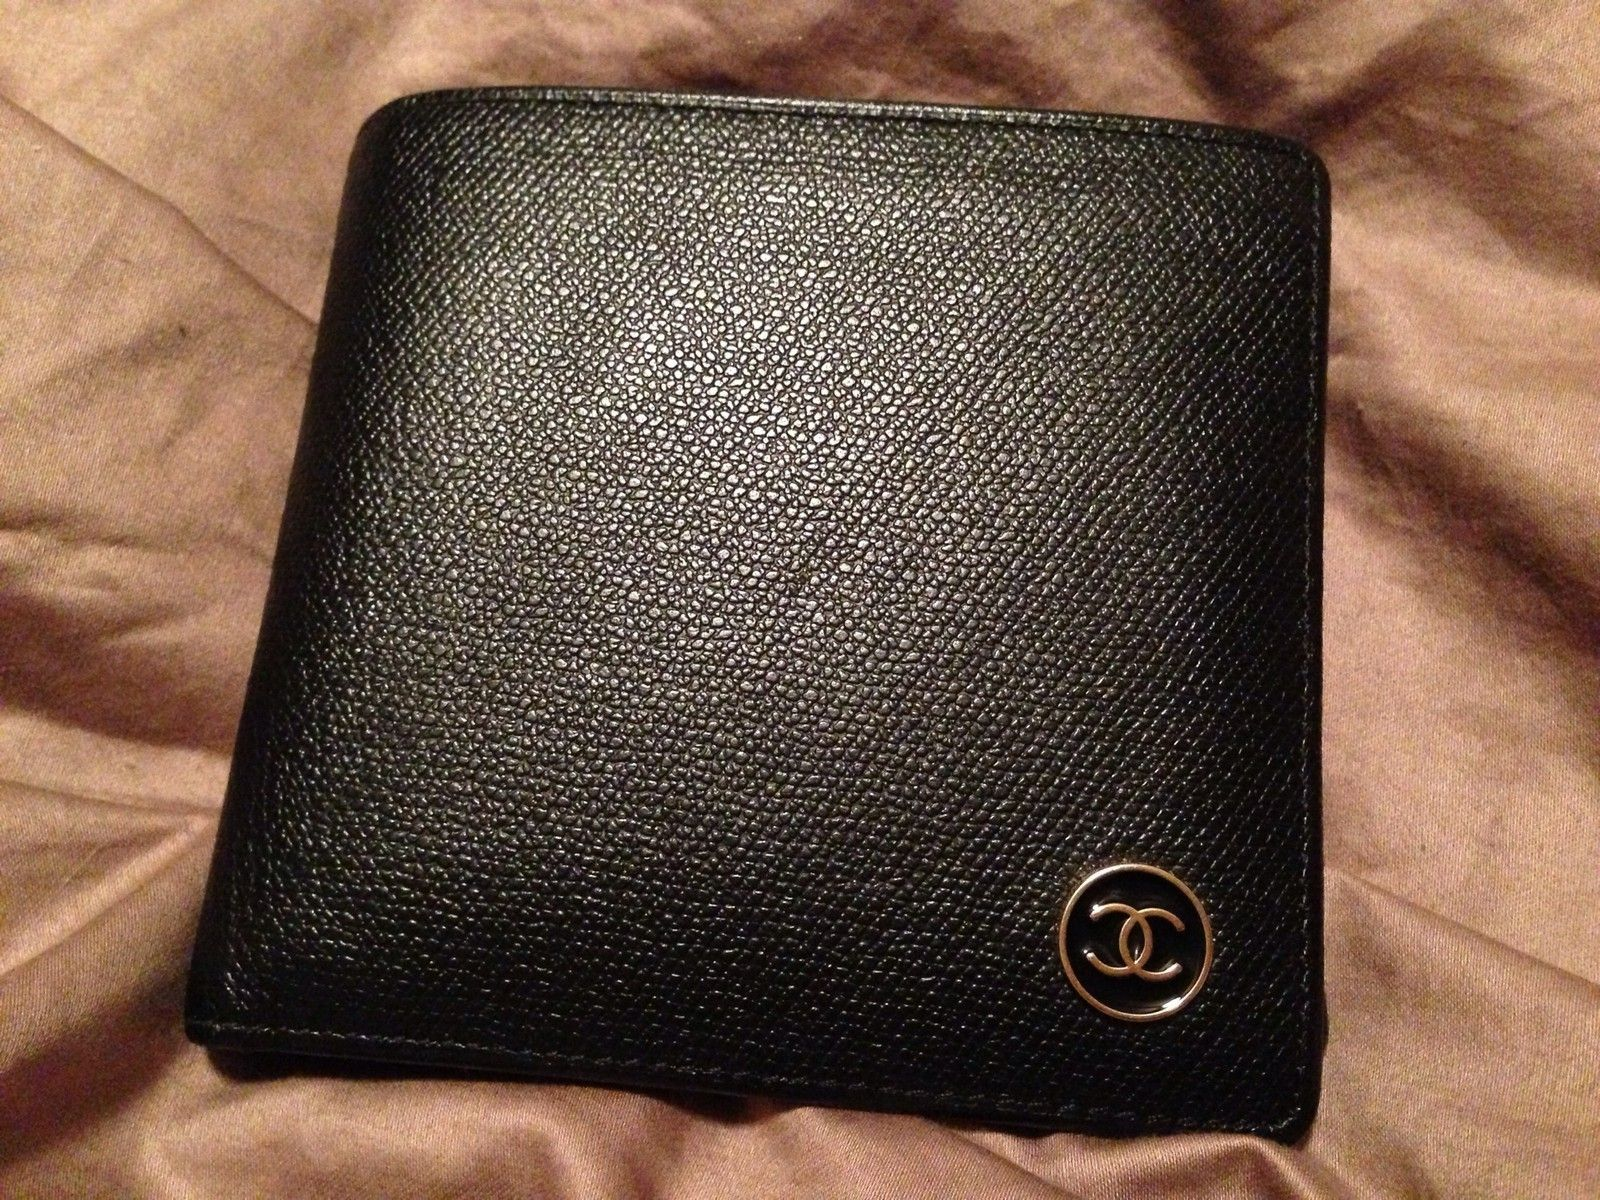 434fce2af9915e Chanel Wallet (Black Leather, Men's Pre-owned Designer Wallets ...